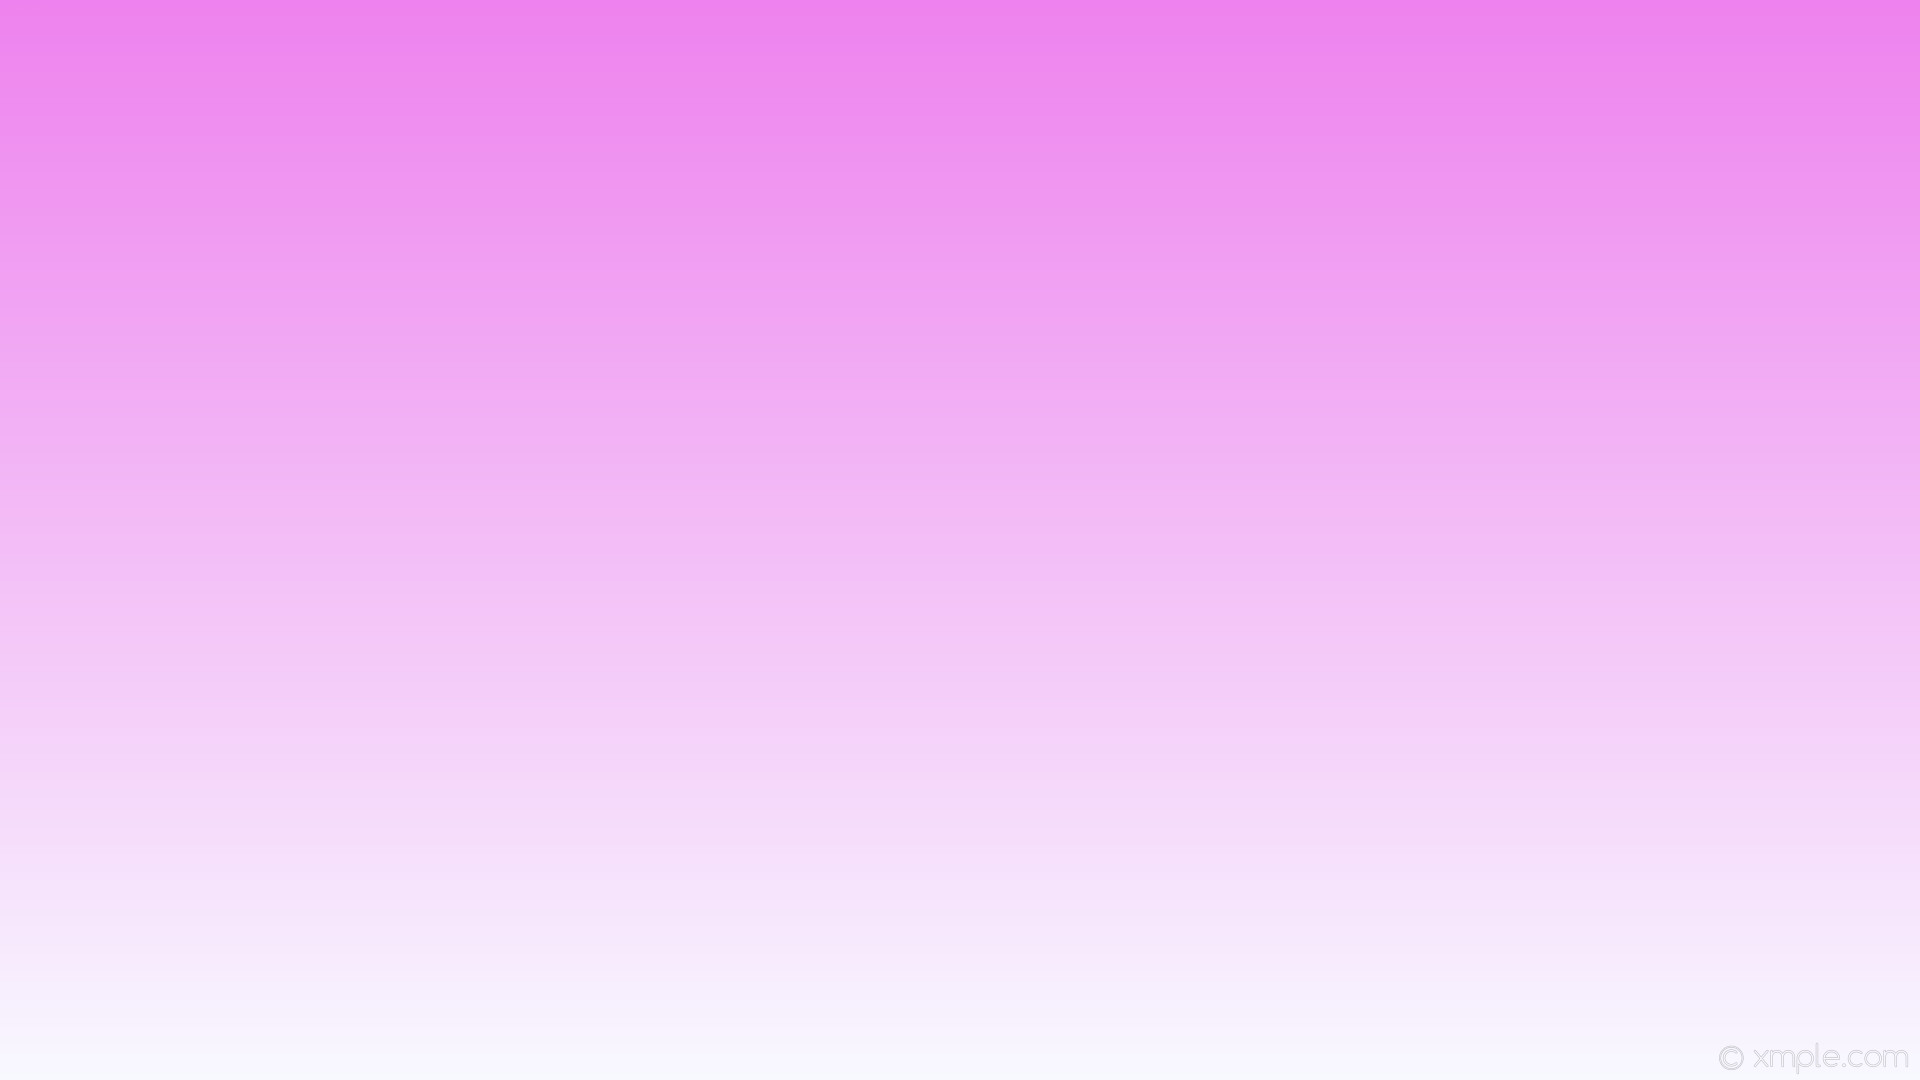 wallpaper white linear gradient purple ghost white violet #f8f8ff #ee82ee  270°